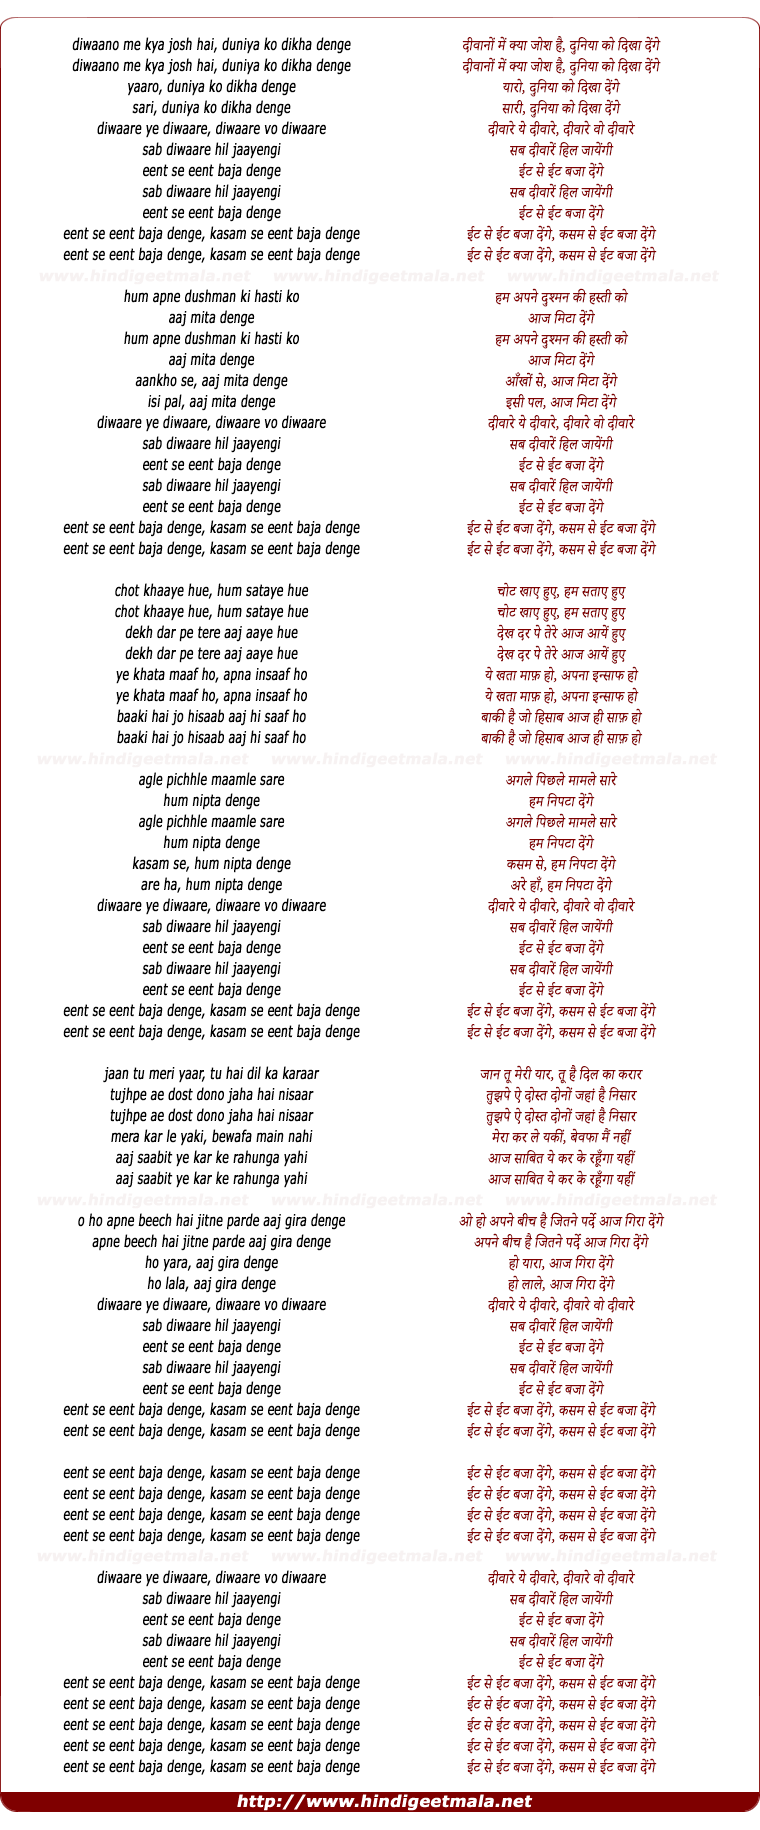 lyrics of song Deewano Me Kya Josh